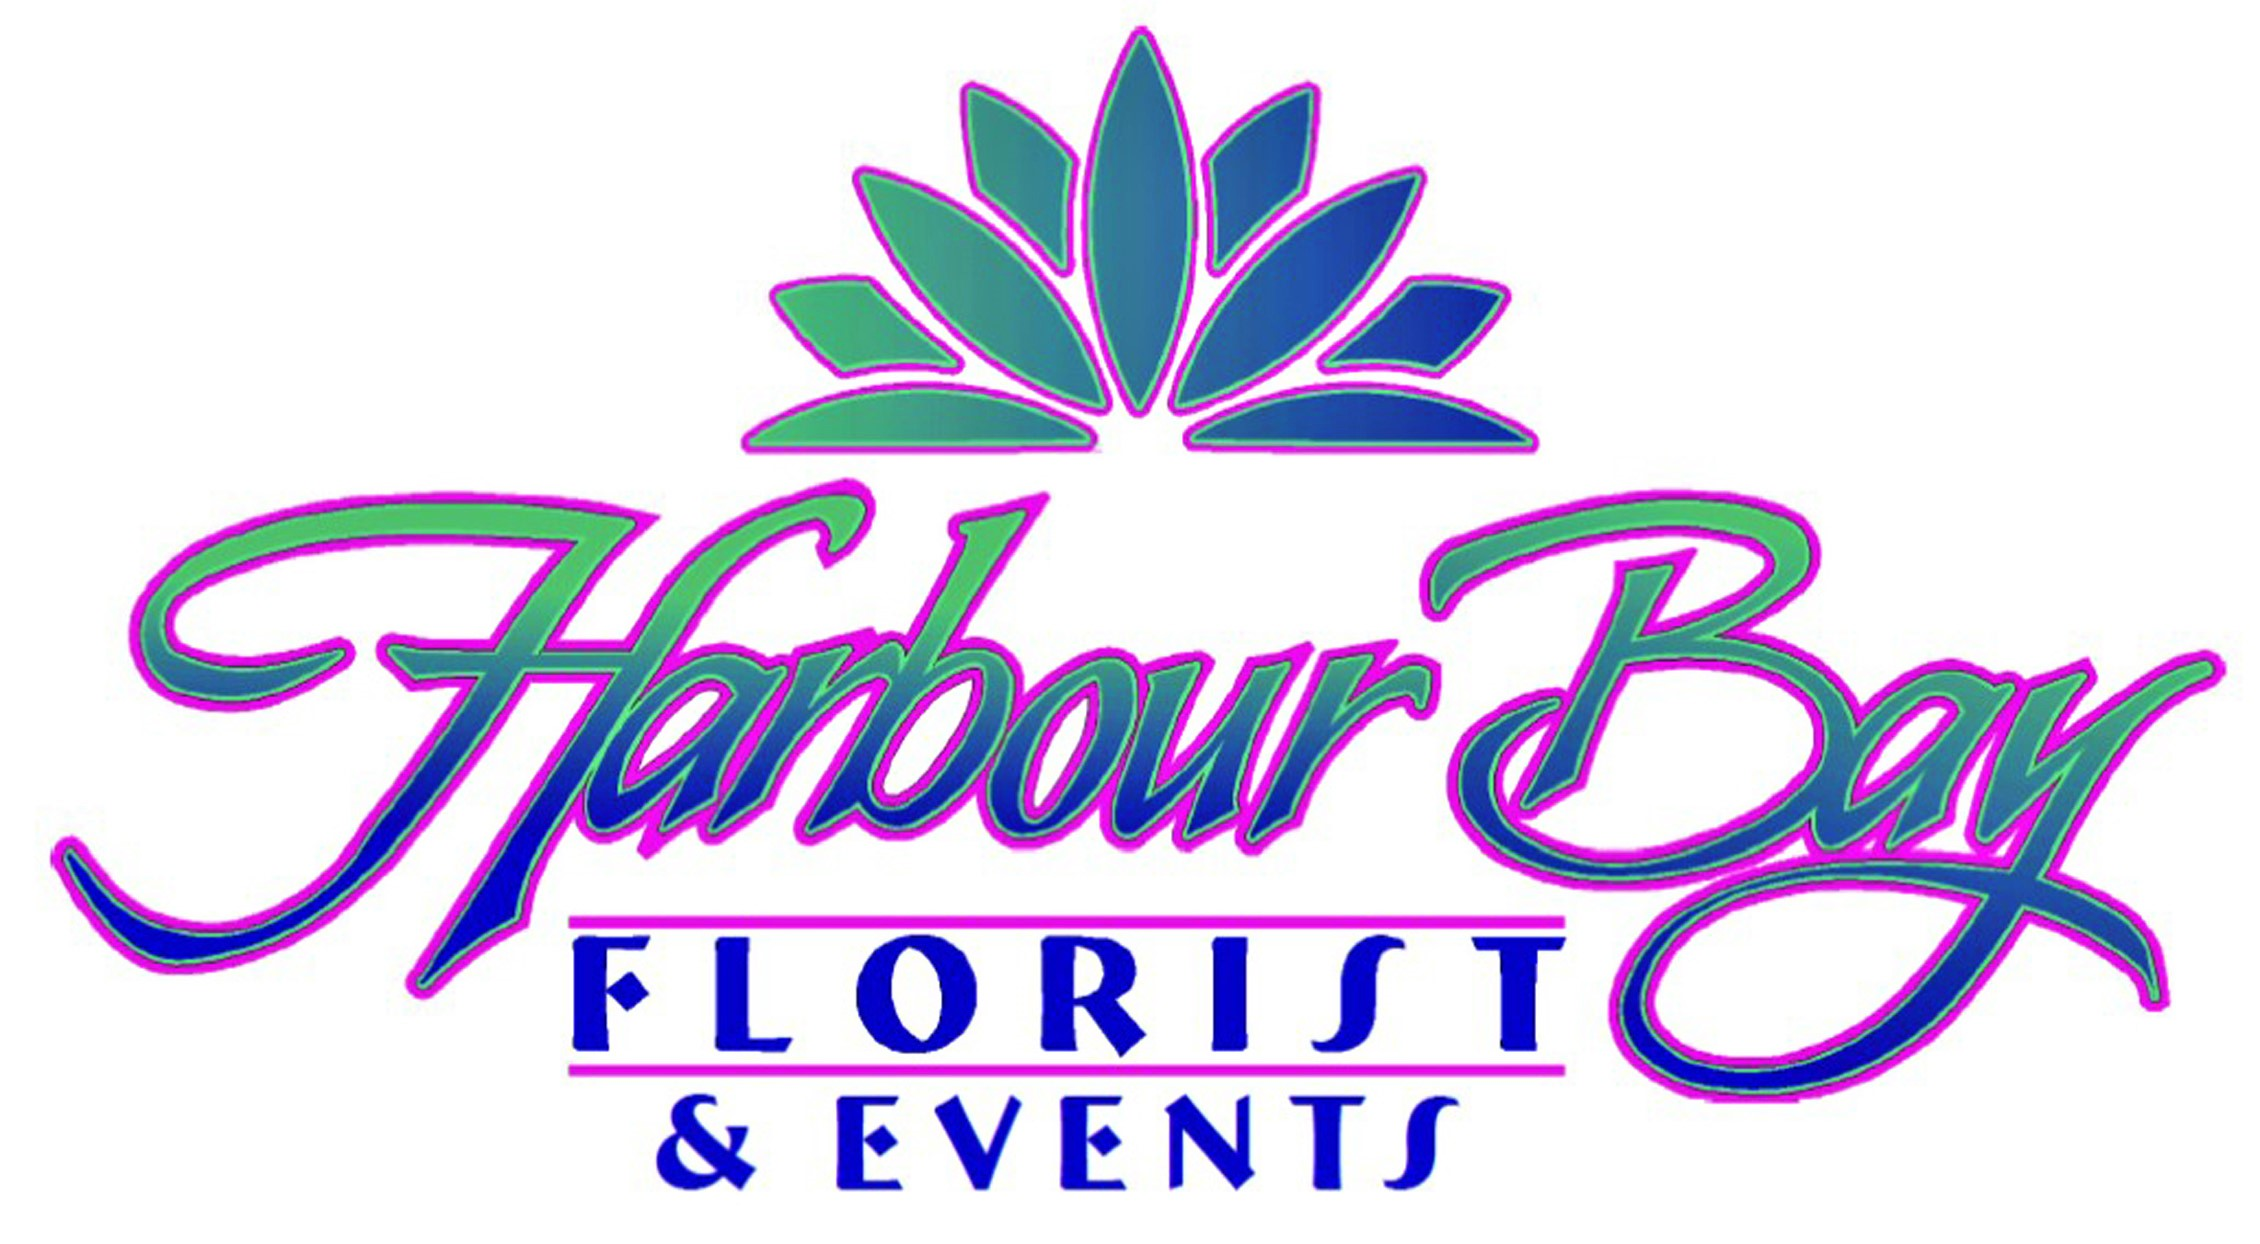 Harbour Bay Florist and Events